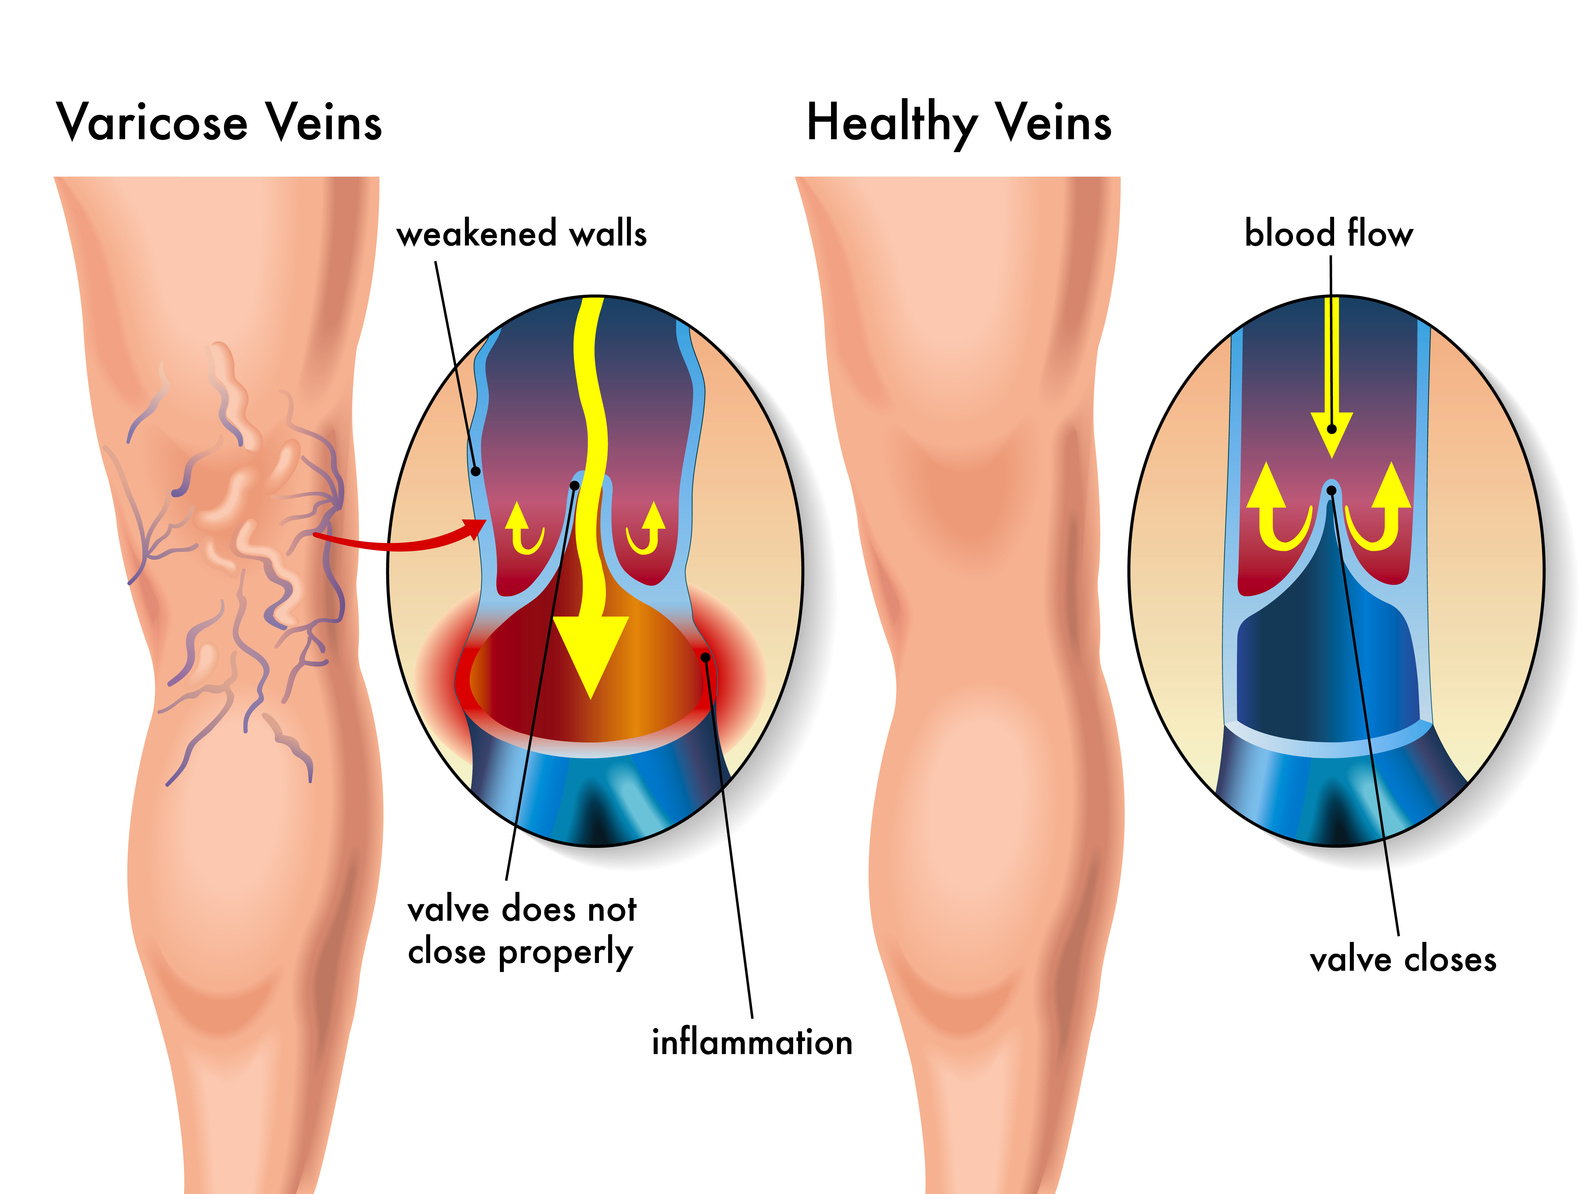 Varicose veins are veins that are not working properly and allow blood to pool in the legs, causing pain, discomfort and bulging veins.